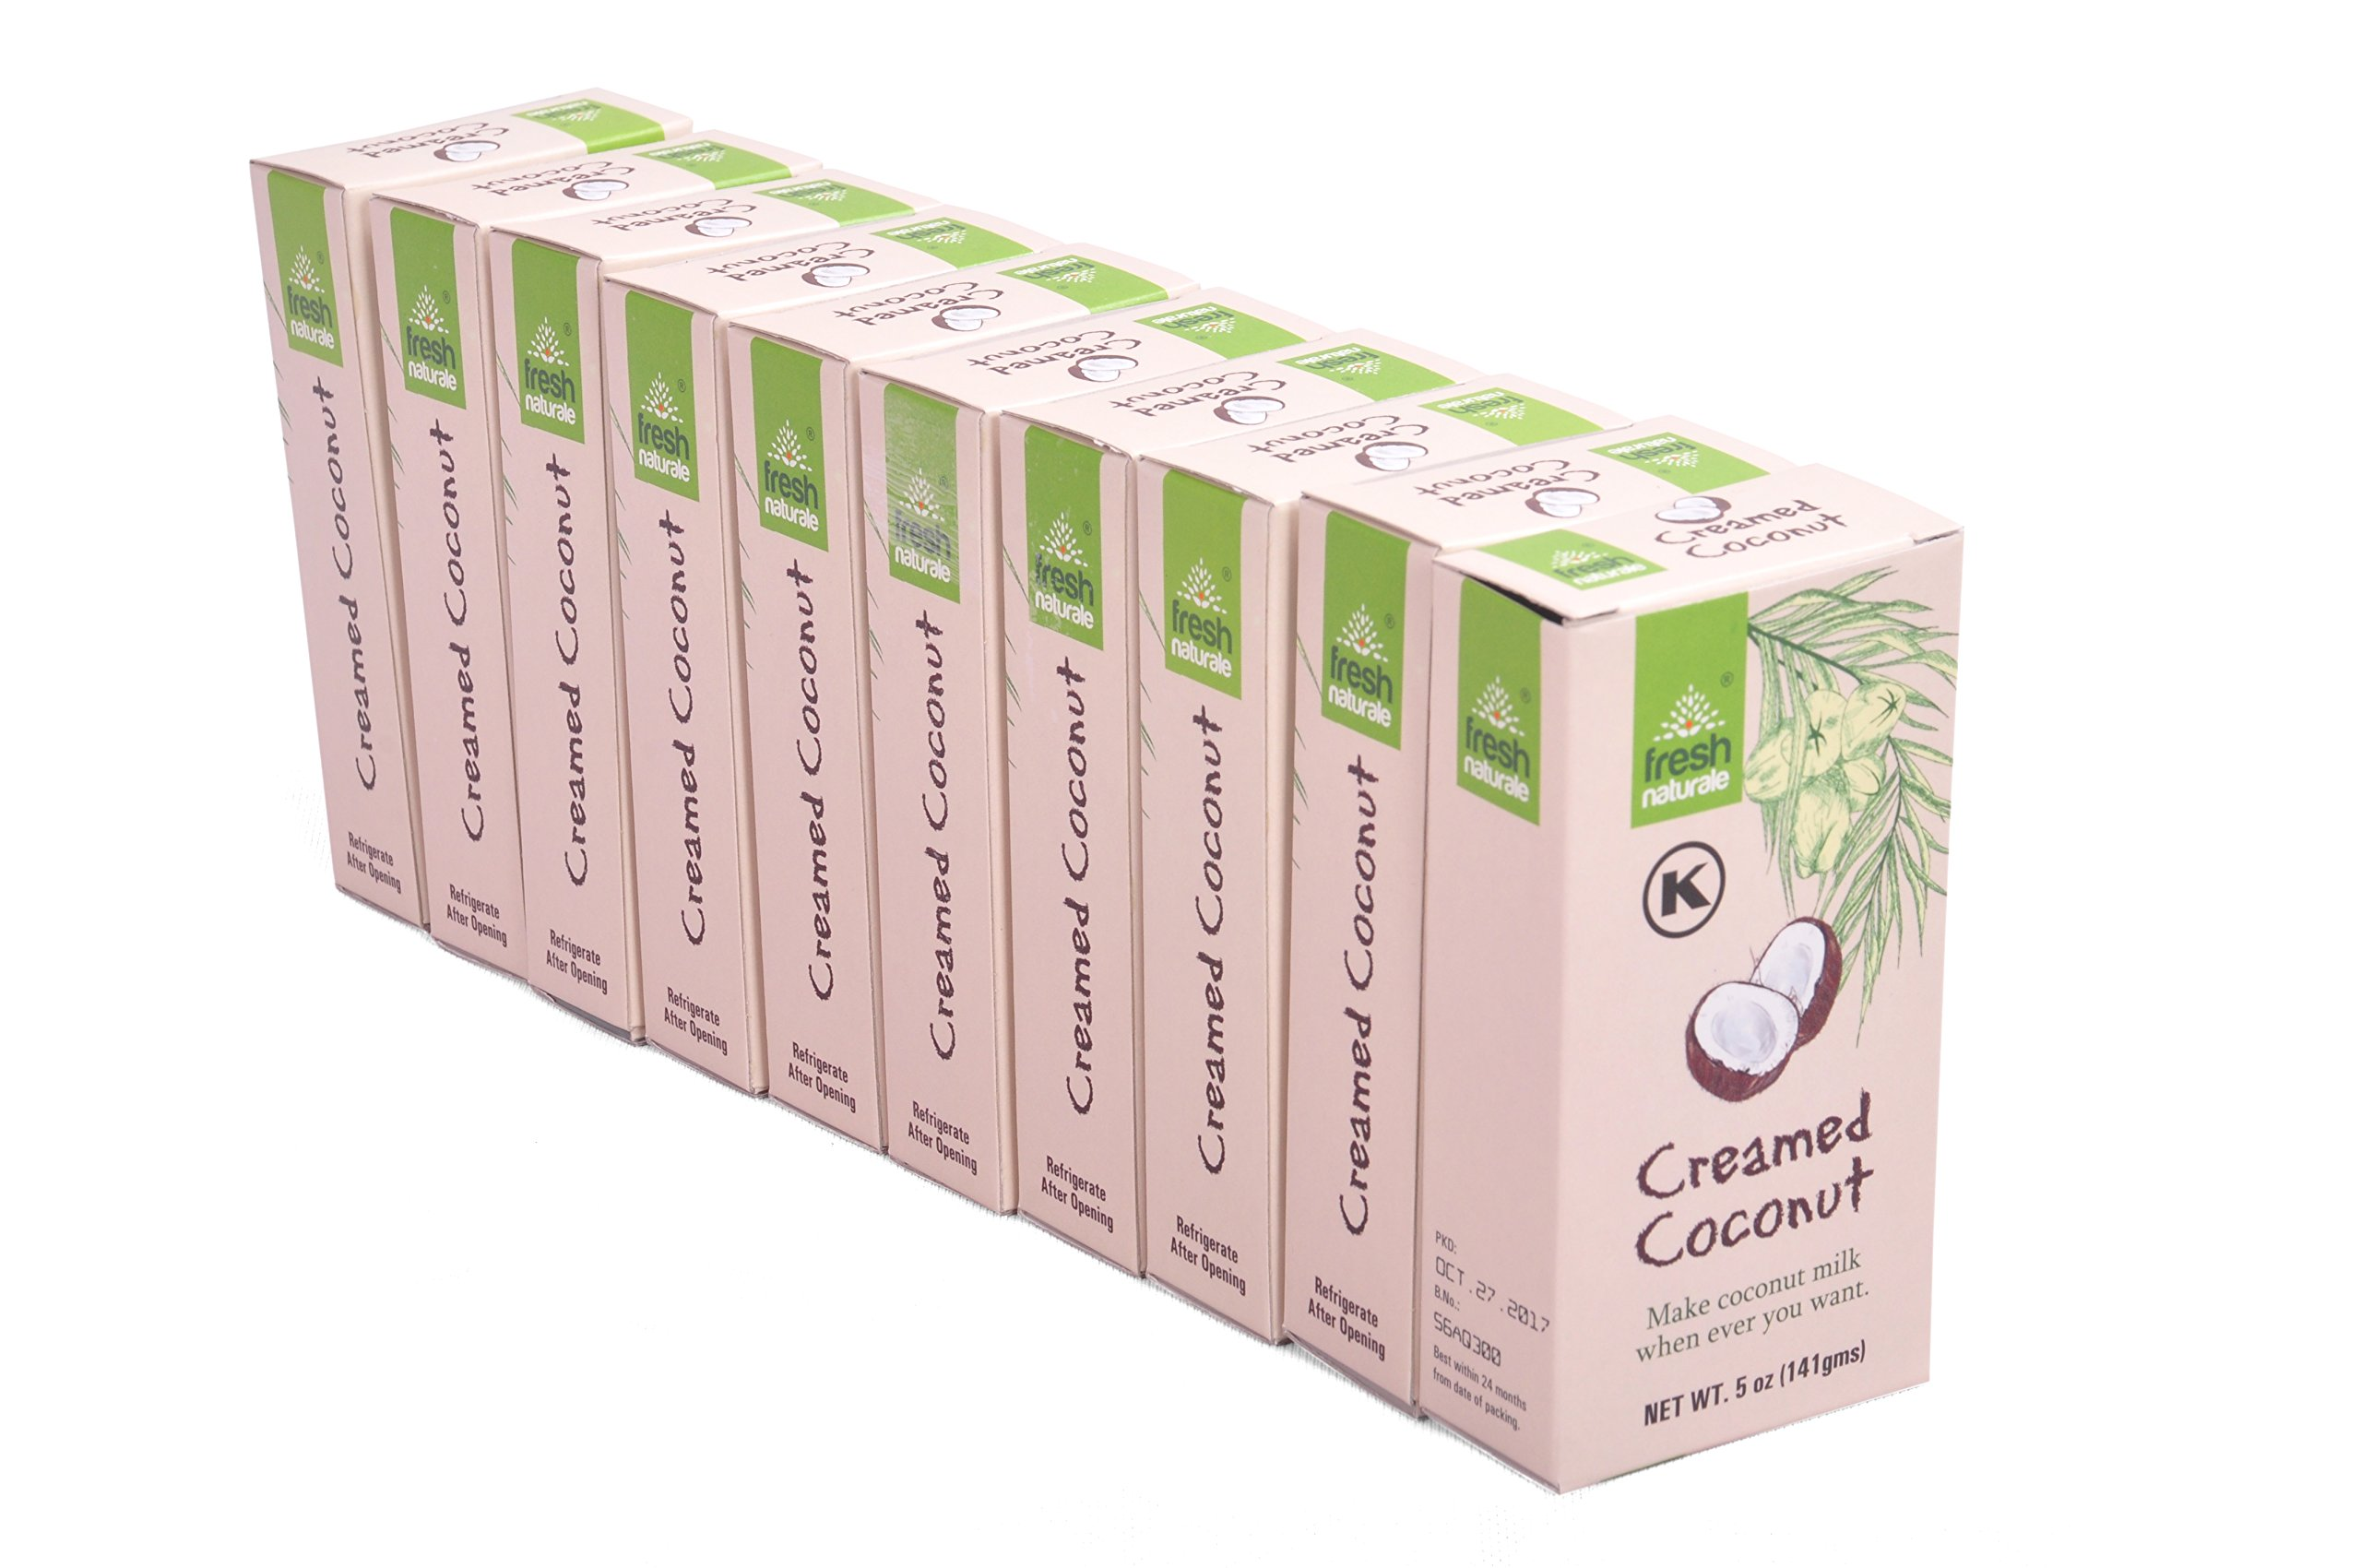 Creamed Coconut 141 gms (5 oz) x 10 from Fresh Naturale Kosher Certified (pack of 10)